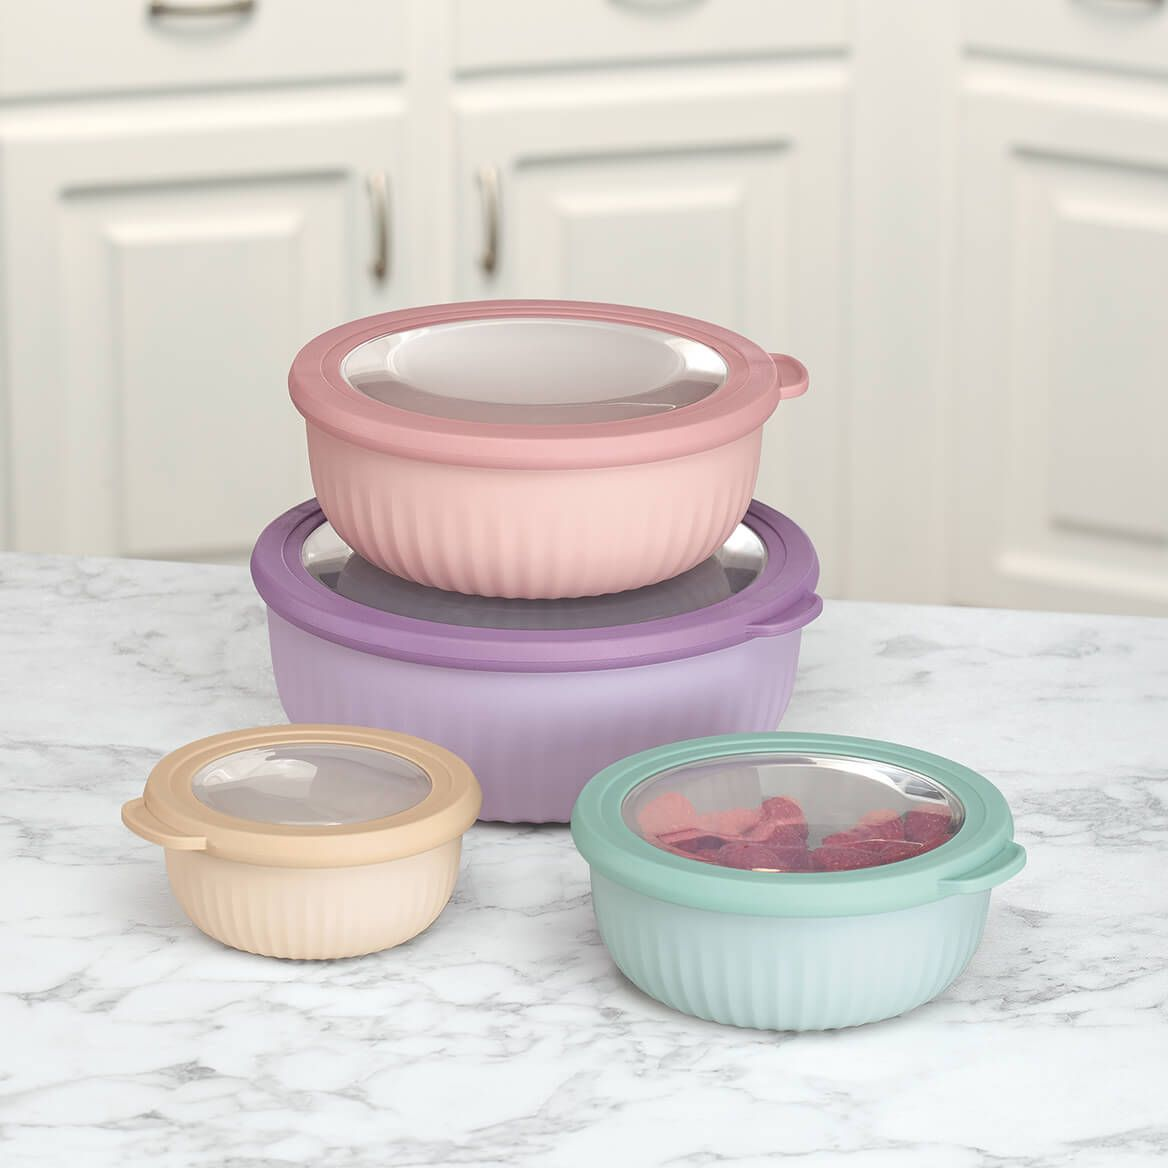 Cap Tight Deluxe Storage Containers Set of 4-369400